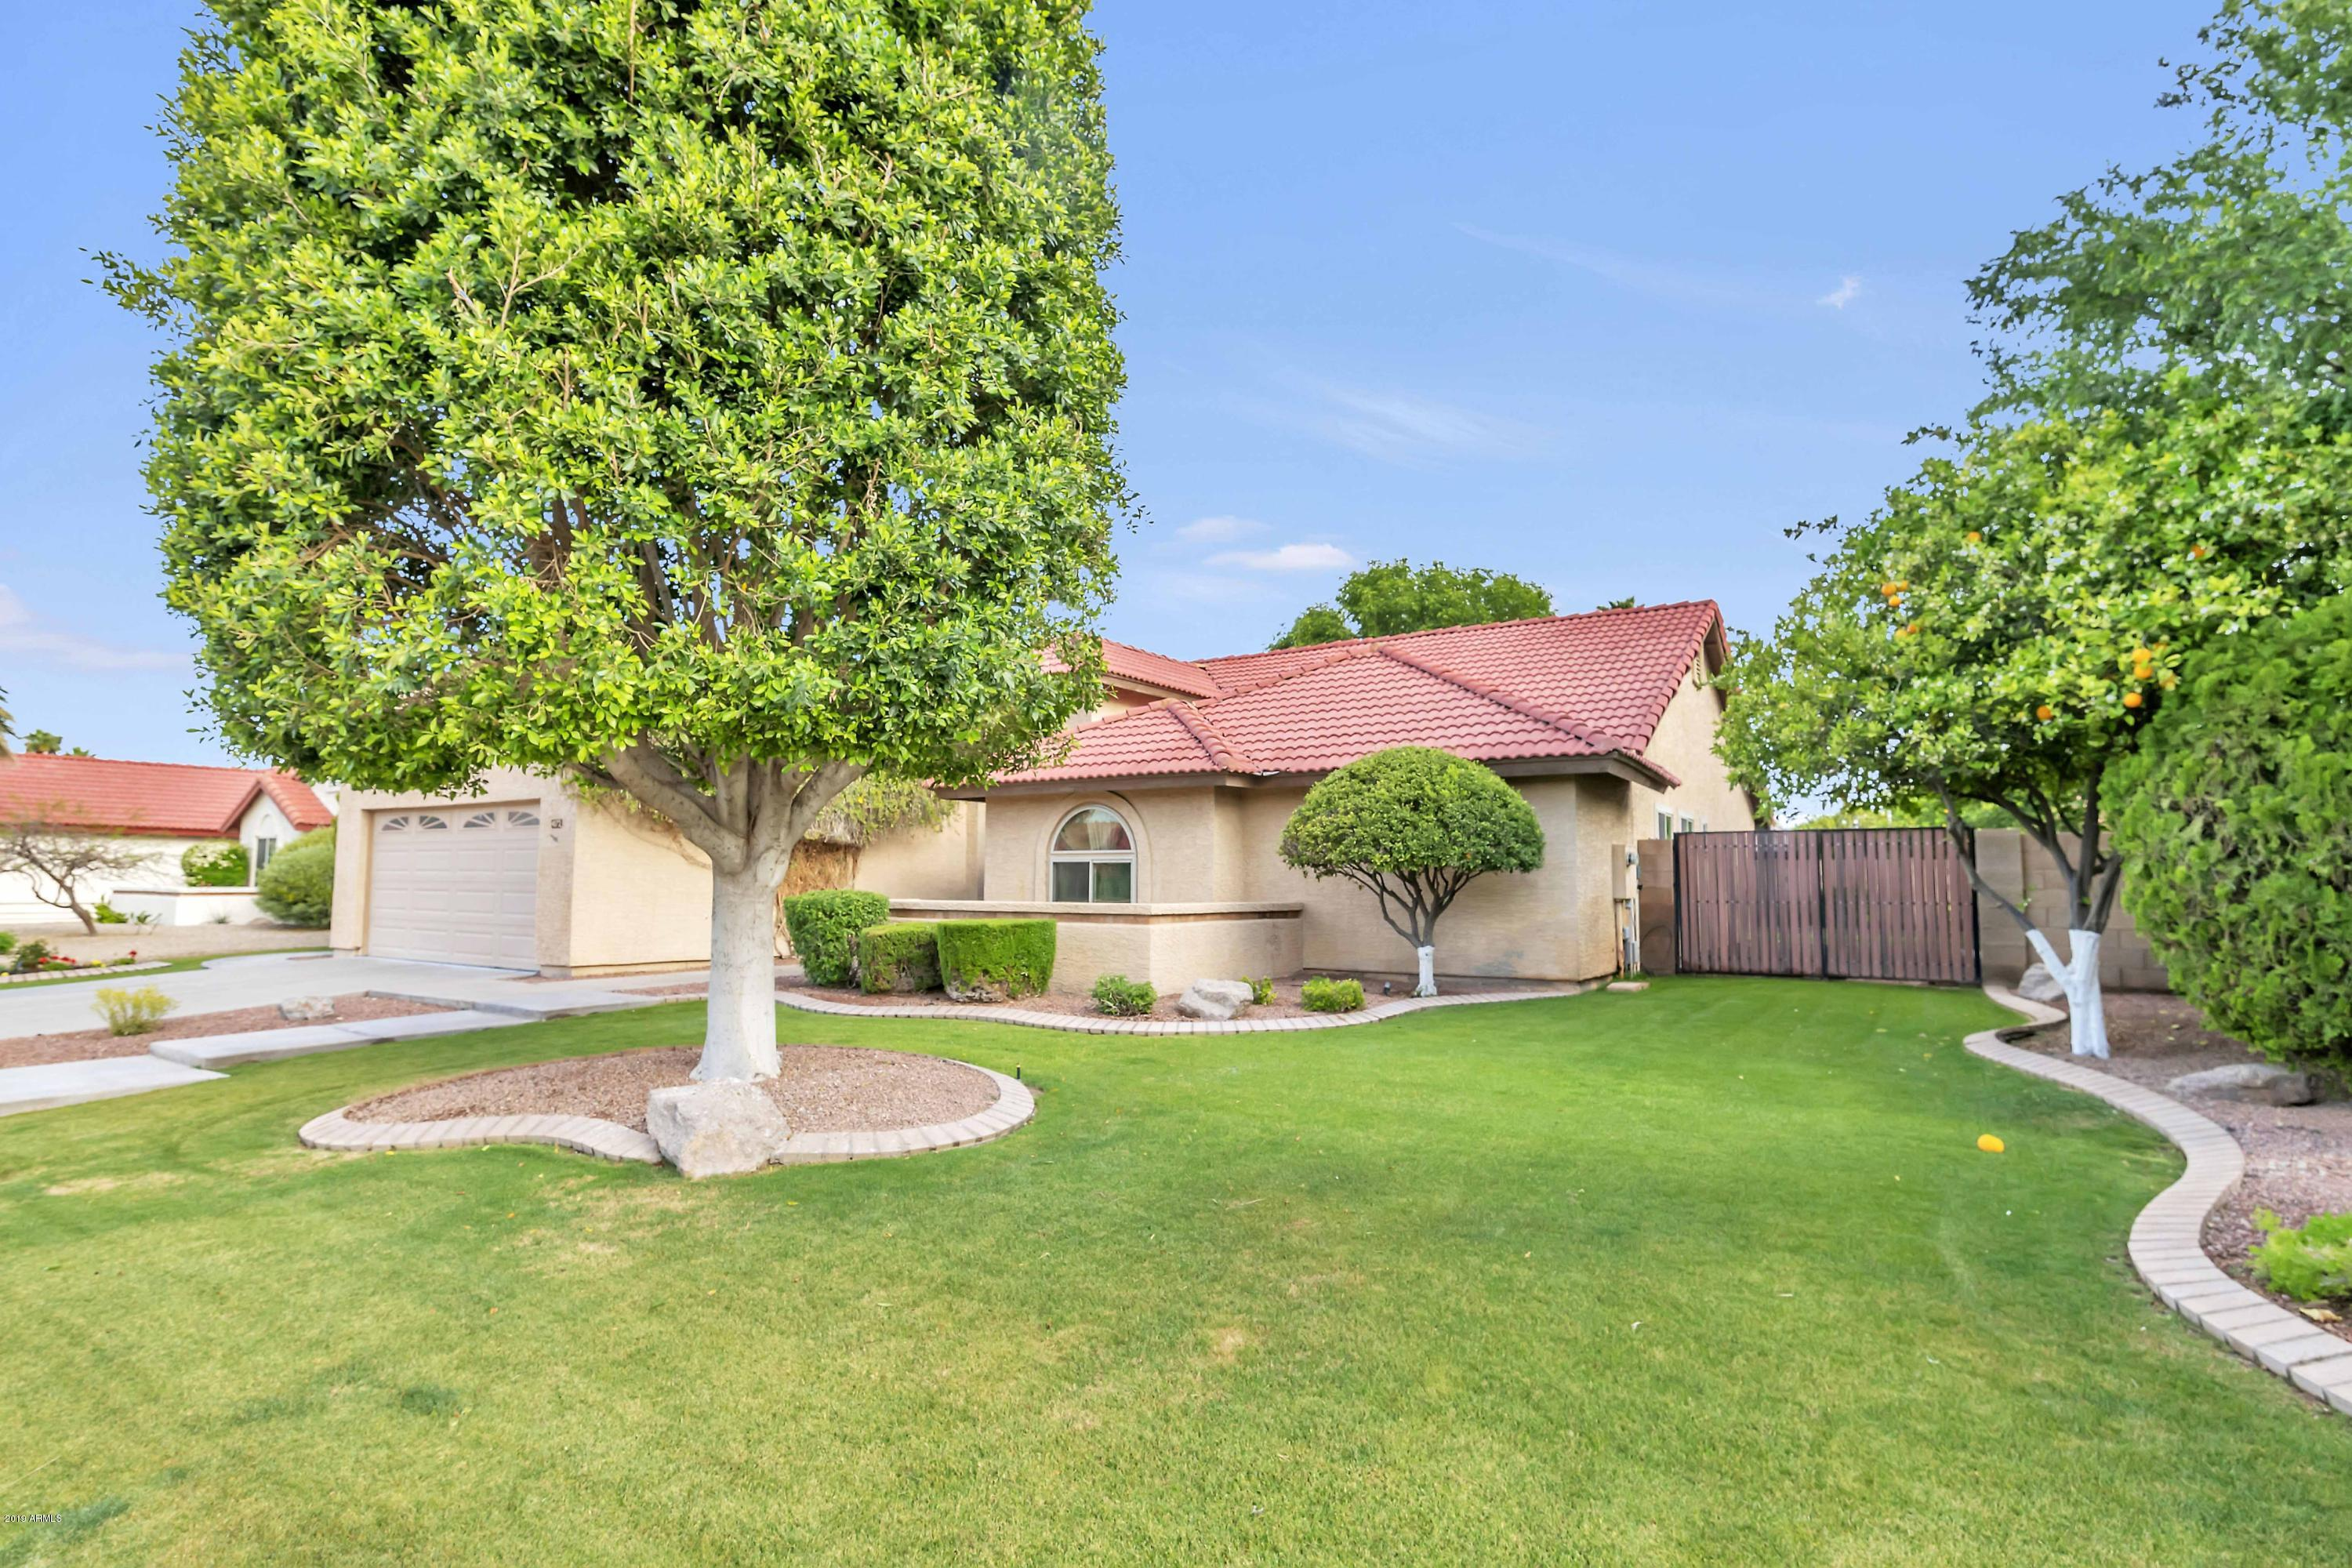 Photo of 4172 W JASPER Drive, Chandler, AZ 85226